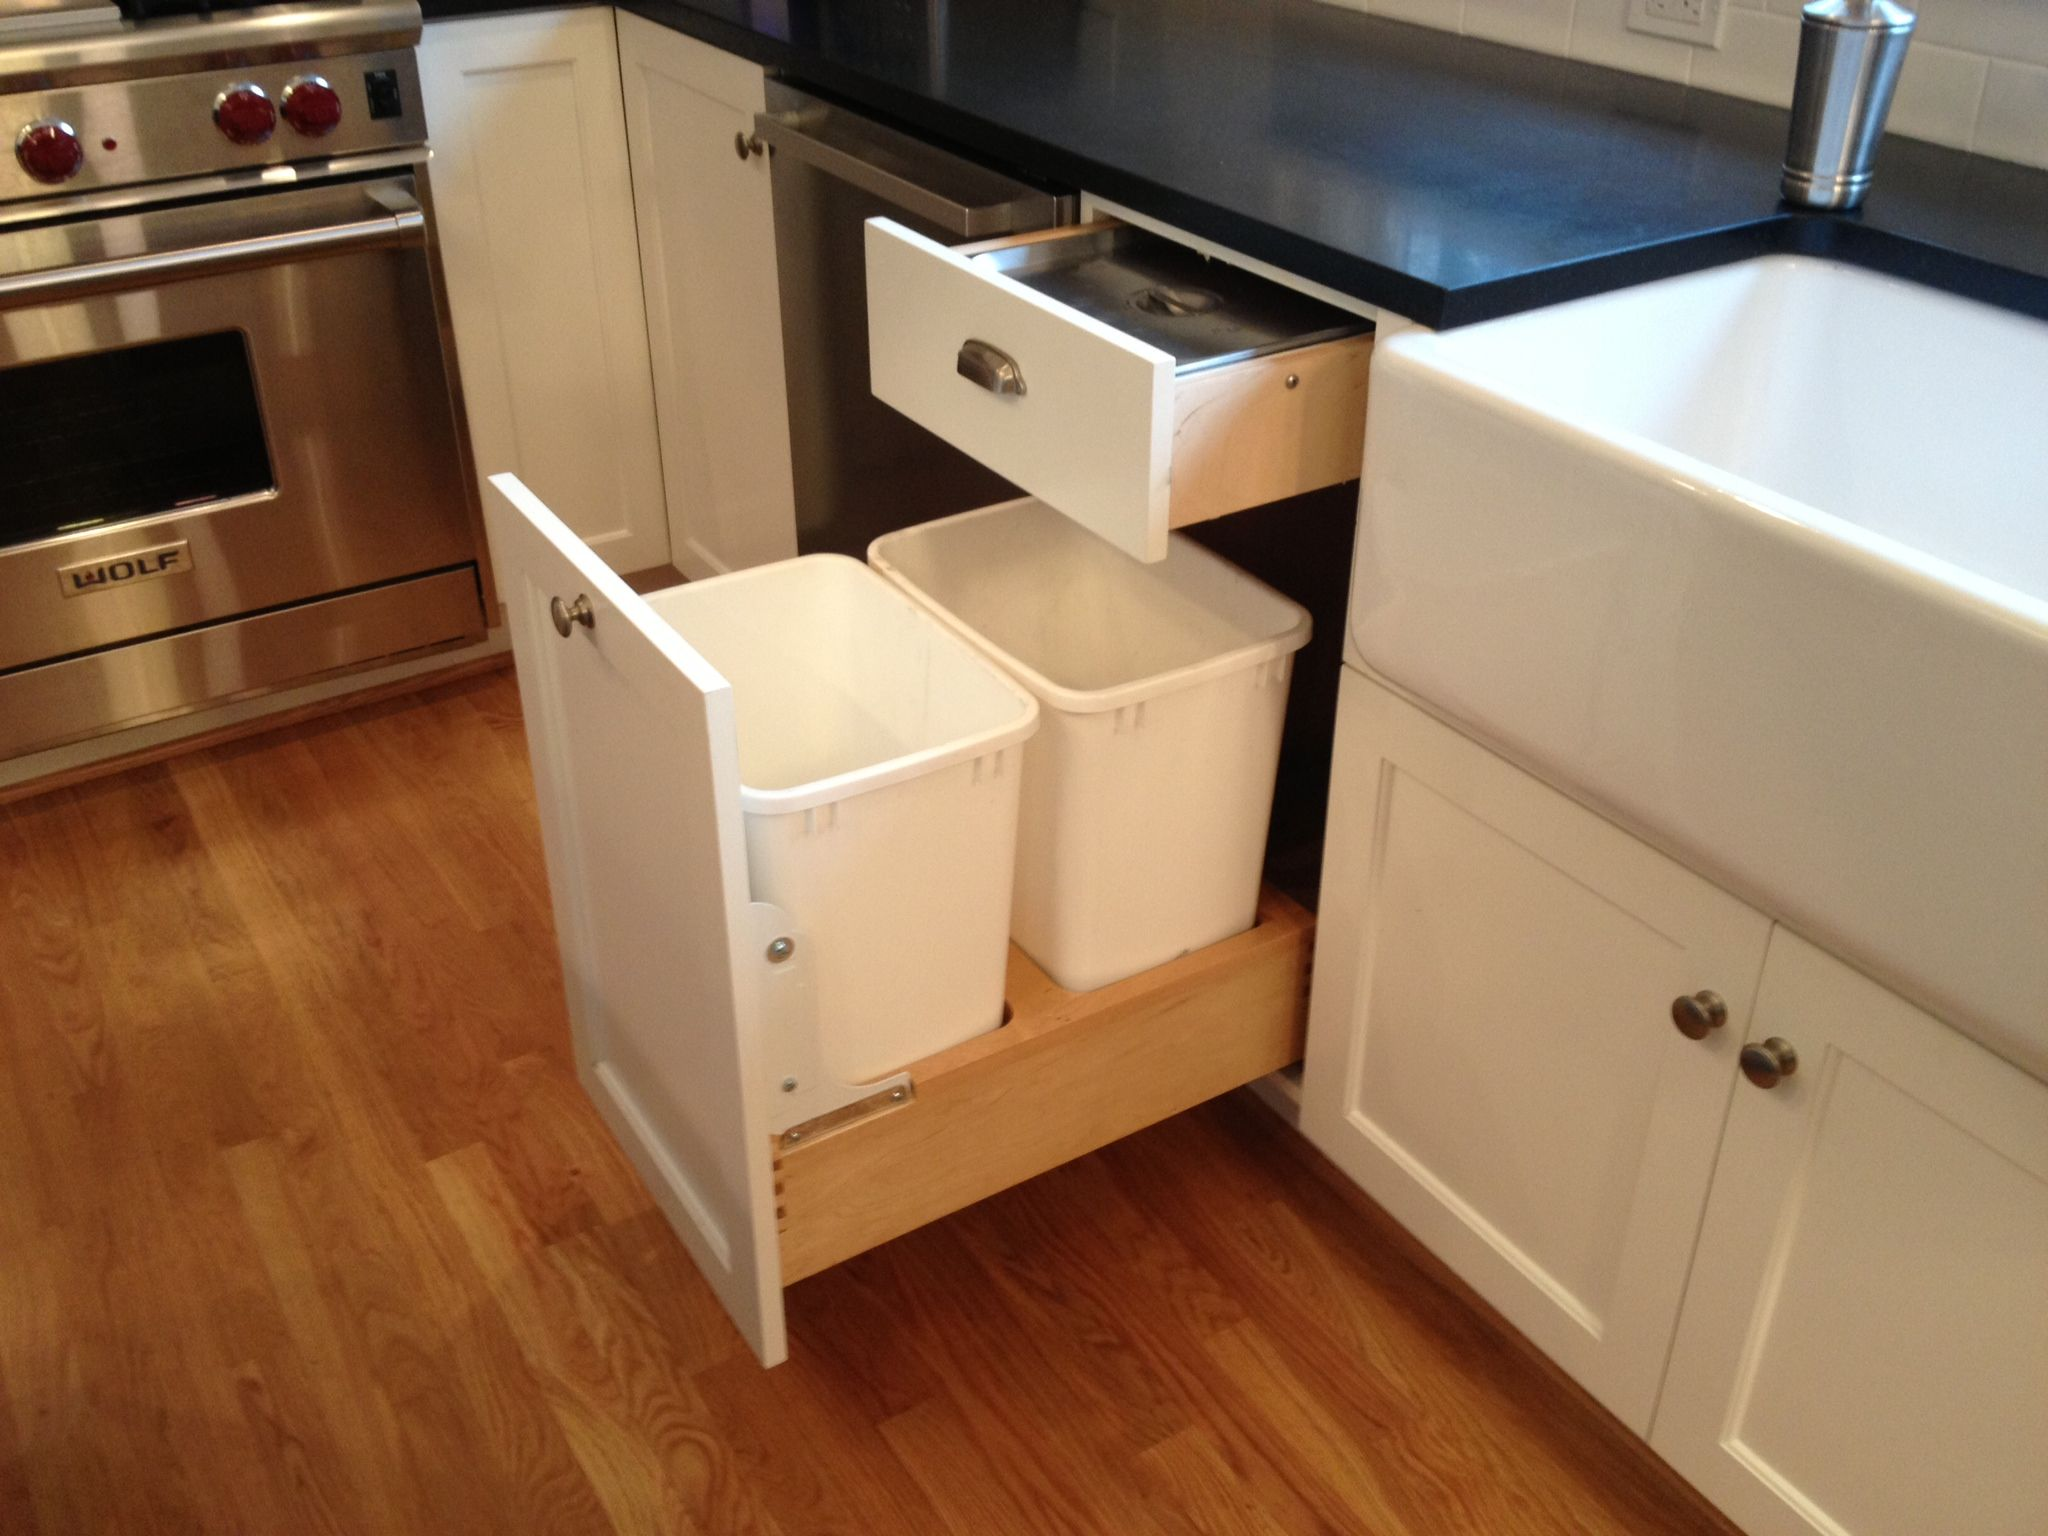 Kitchen Garbage Solutions Chef 39s Kitchen In 1920s Portland Home Storage Solutions